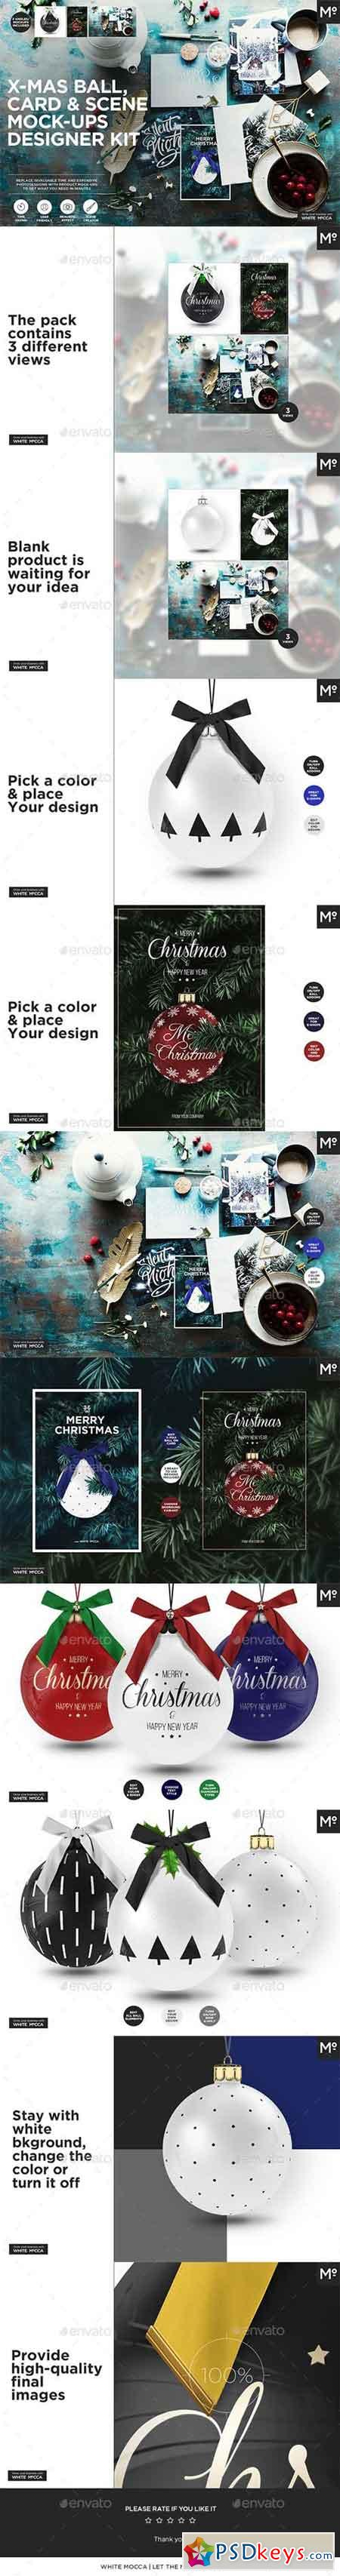 X-mas Ball, Card & Scene Mock-ups Designer Kit 20948473